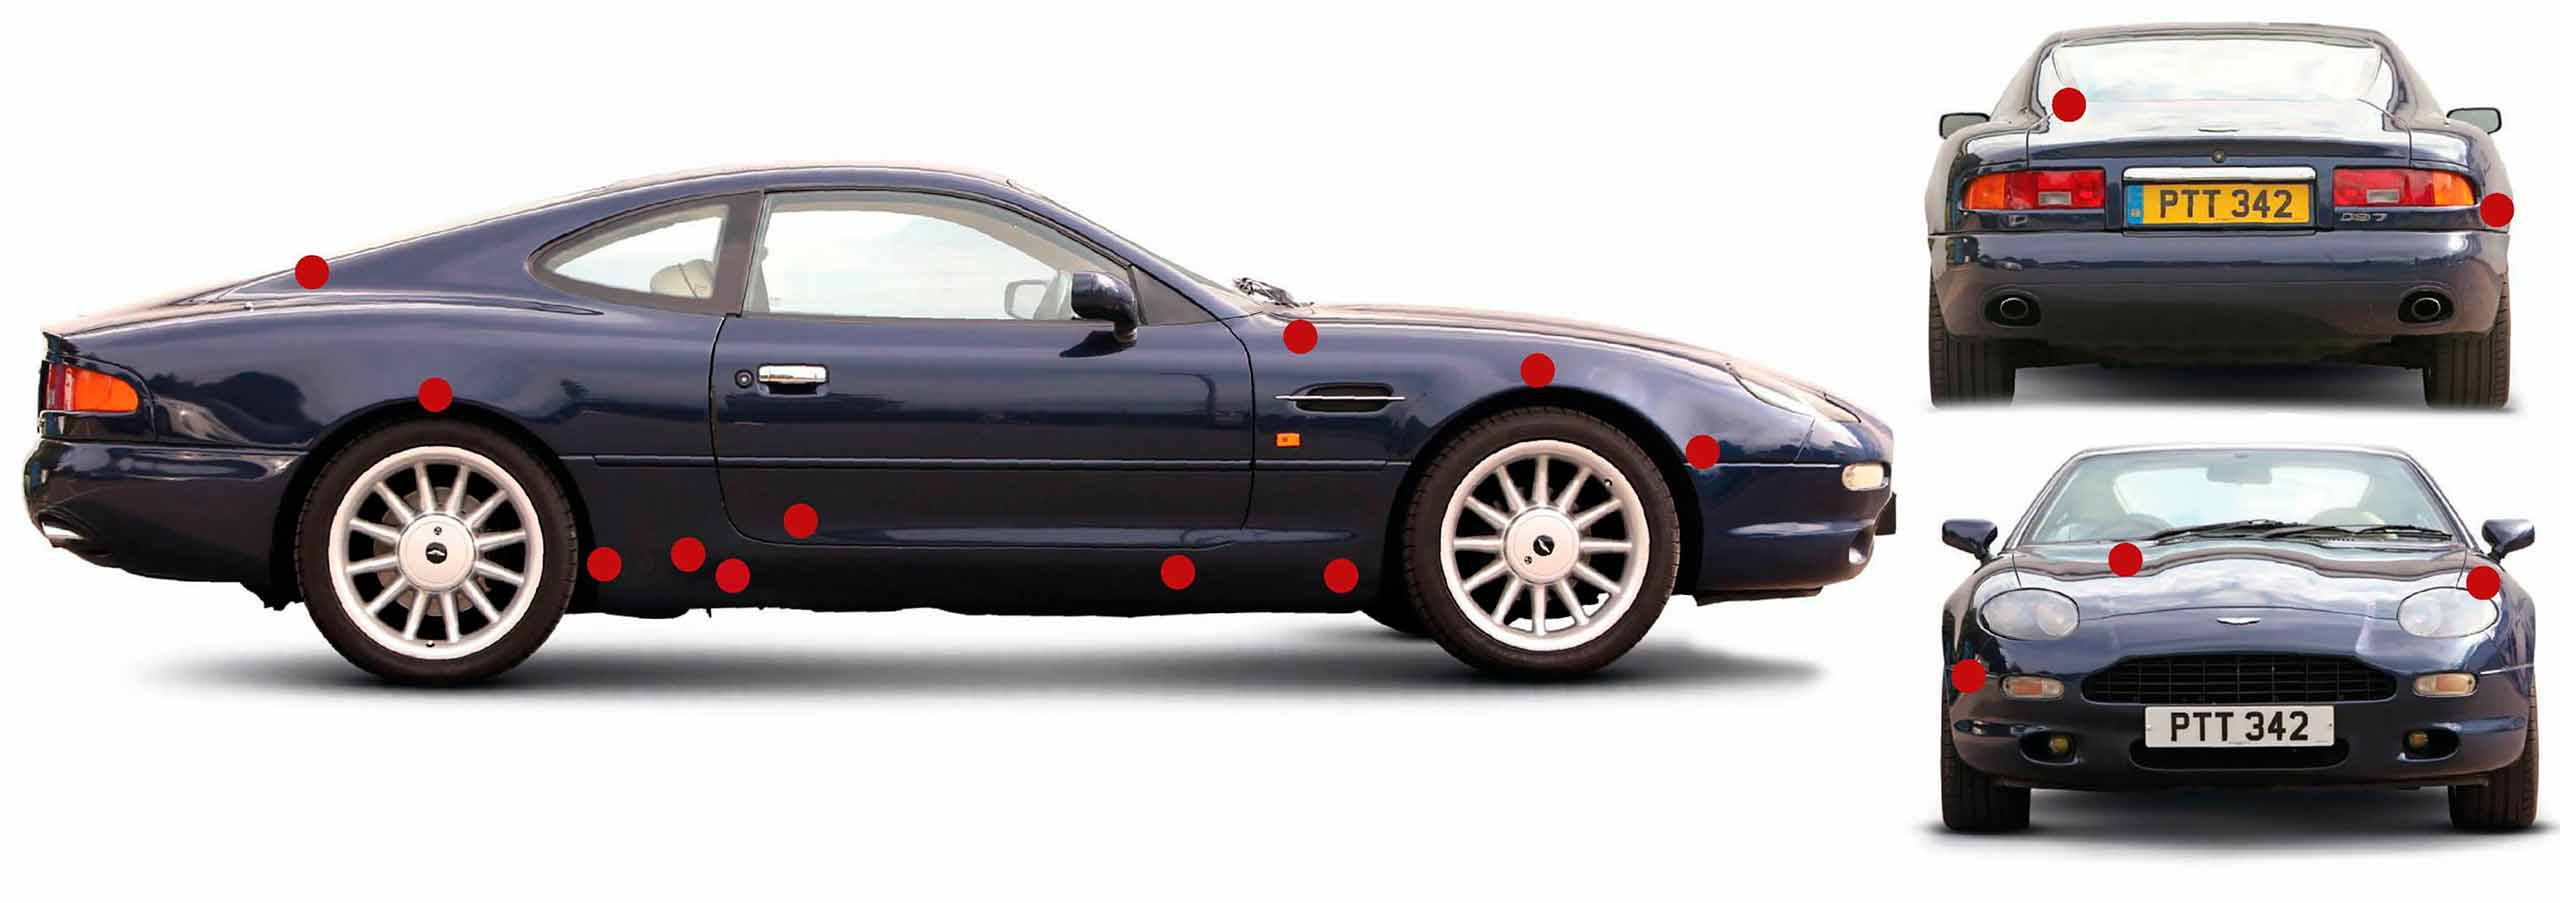 Aston Martin Db7 Buyer S Guide Drive My Blogs Drive